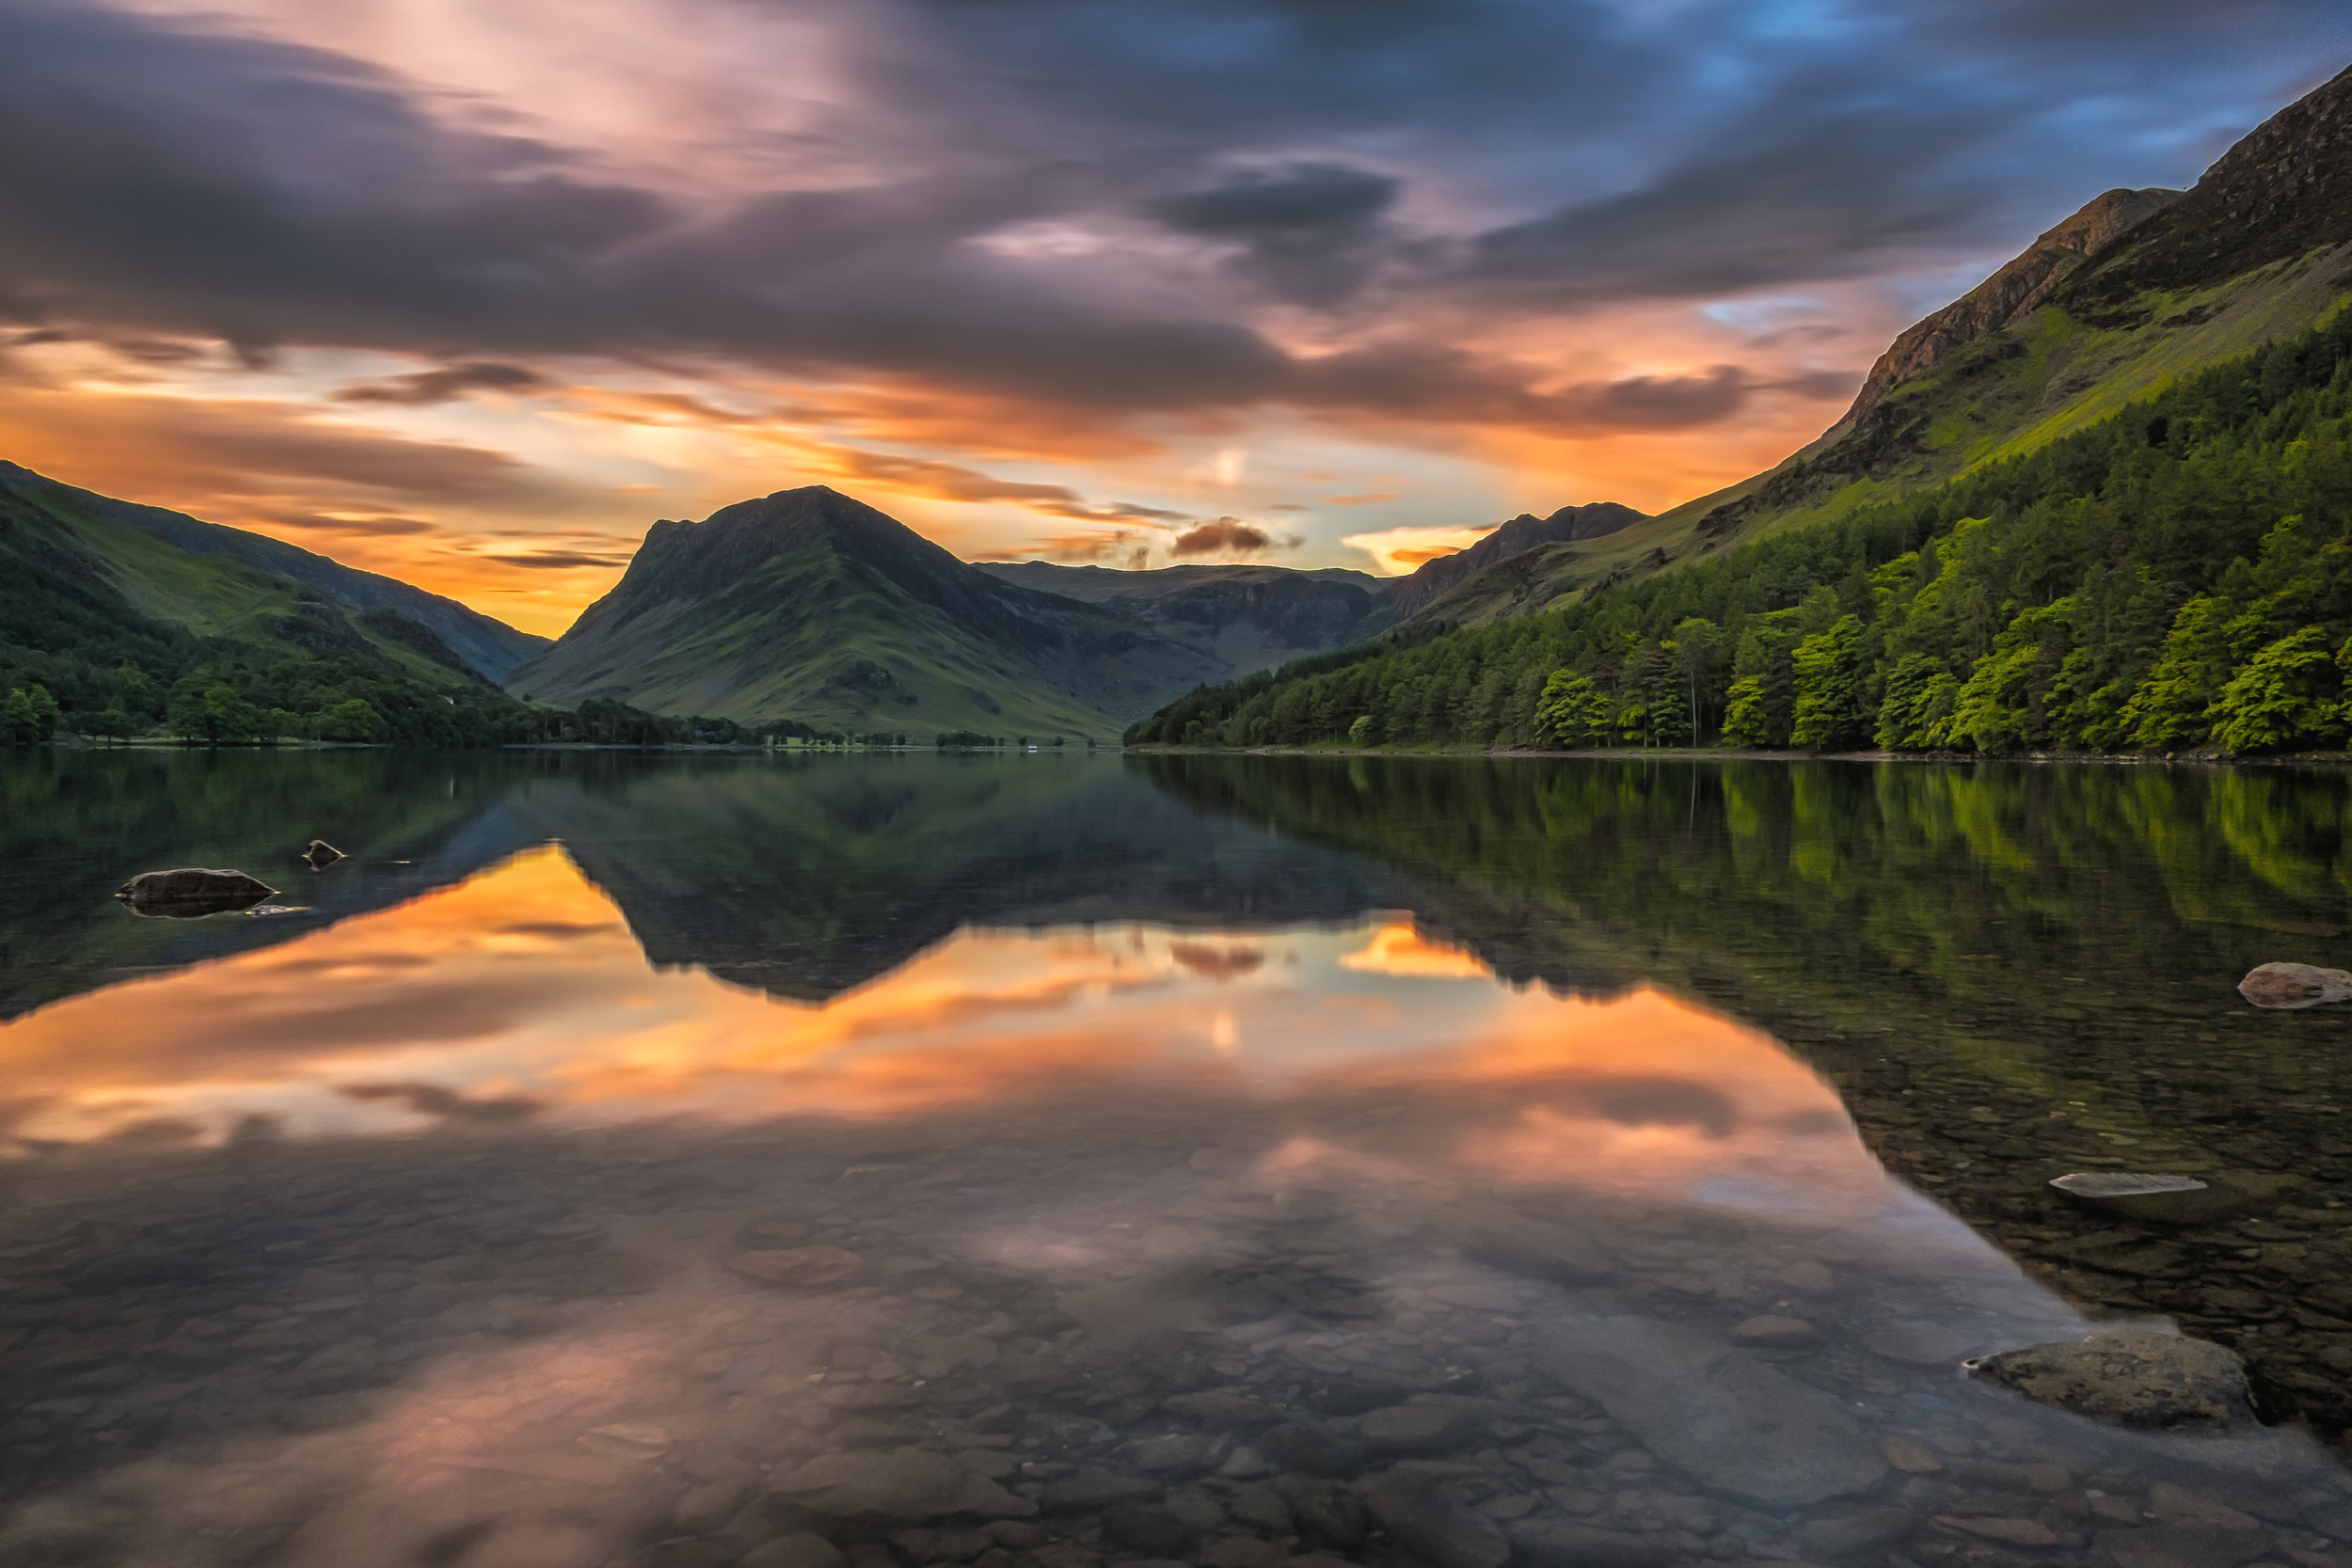 First light over Buttermere. Fujifilm X-T1 + 18mm f/2 @ f/13. ISO 200. B+W ND Filter. 30 Second Exposure.